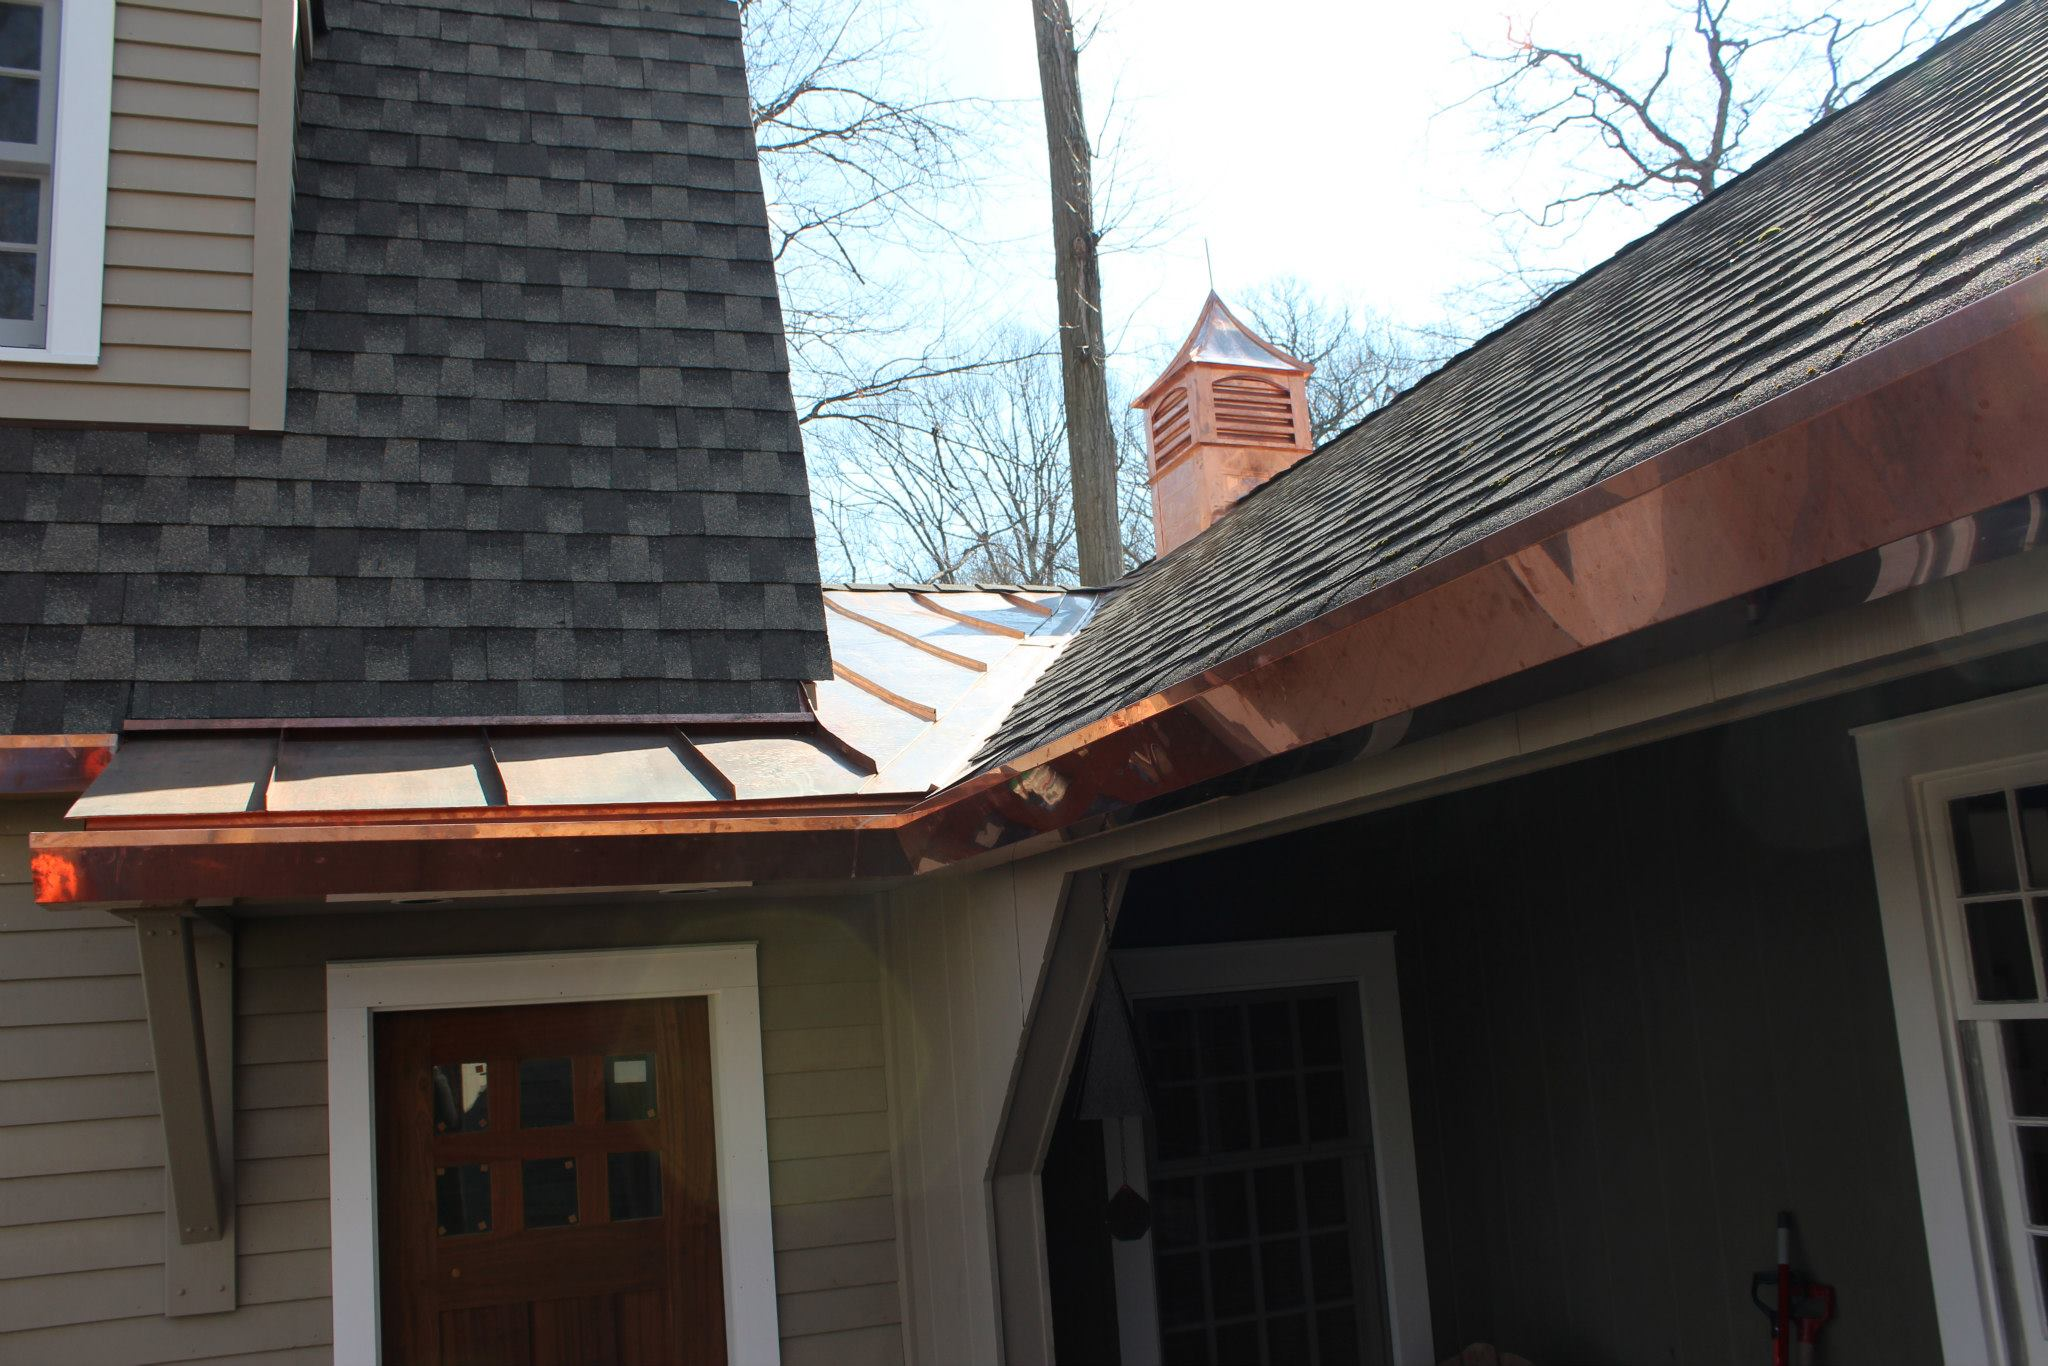 Upgrades To Consider If You're Working On Your Roof